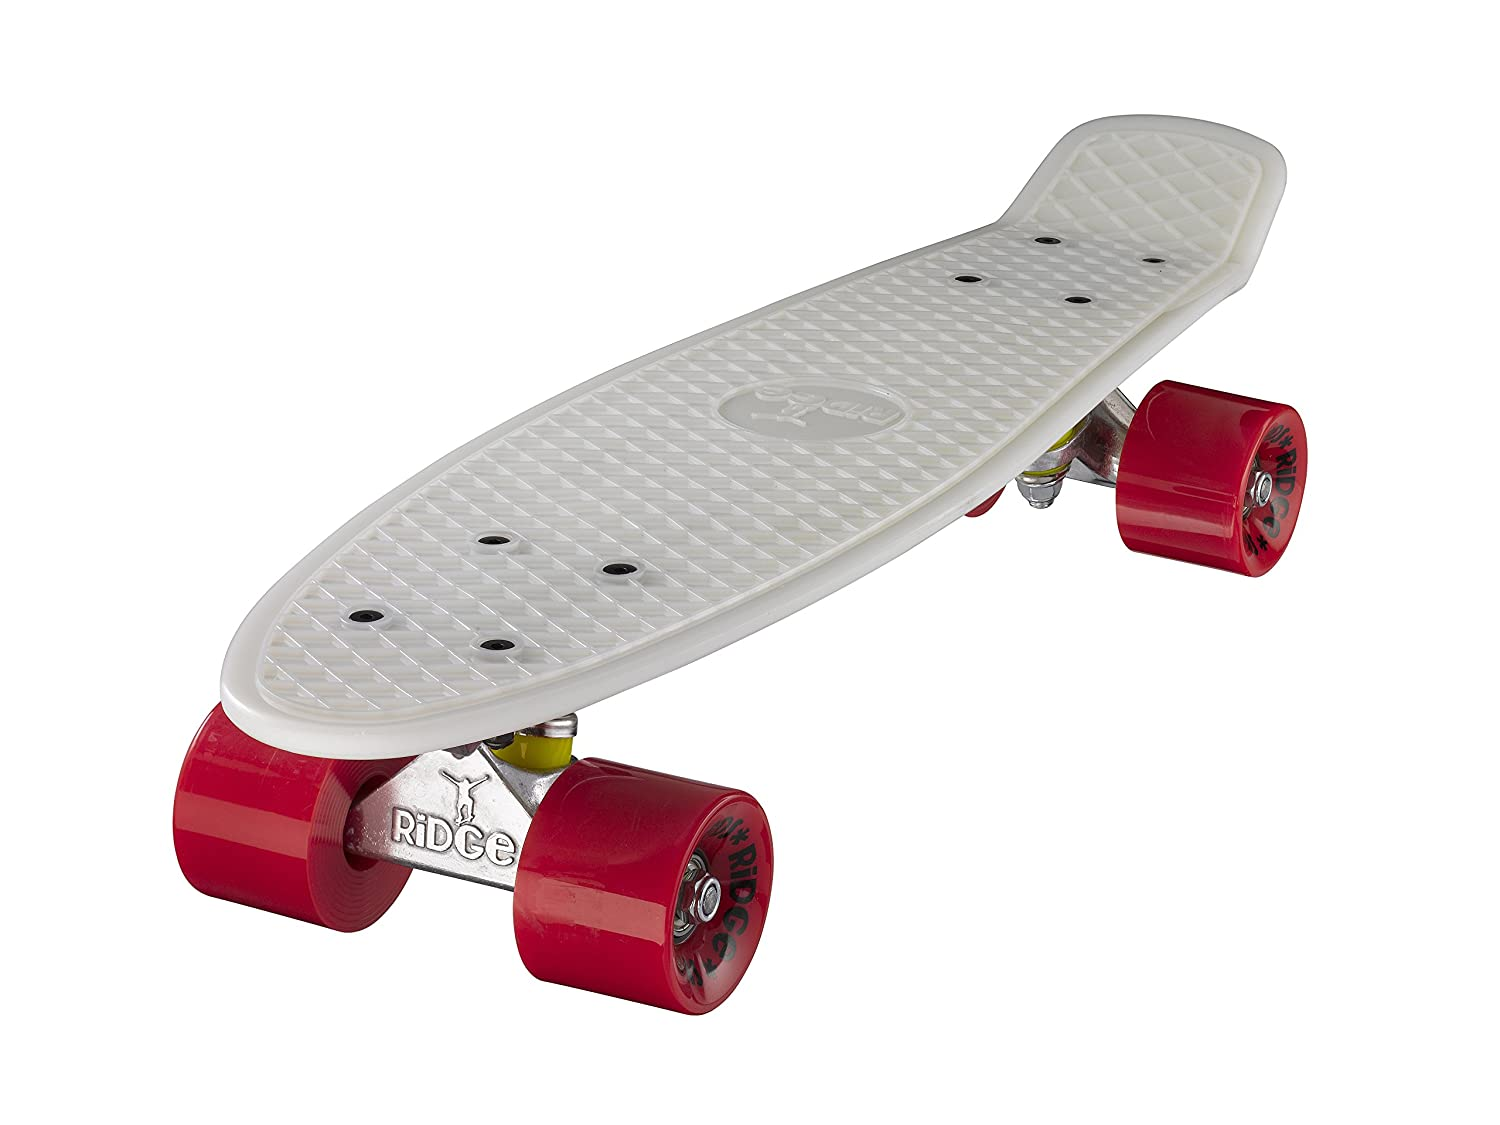 Ridge Retro Cruiser Skateboard color blanco brillante  rojo cm